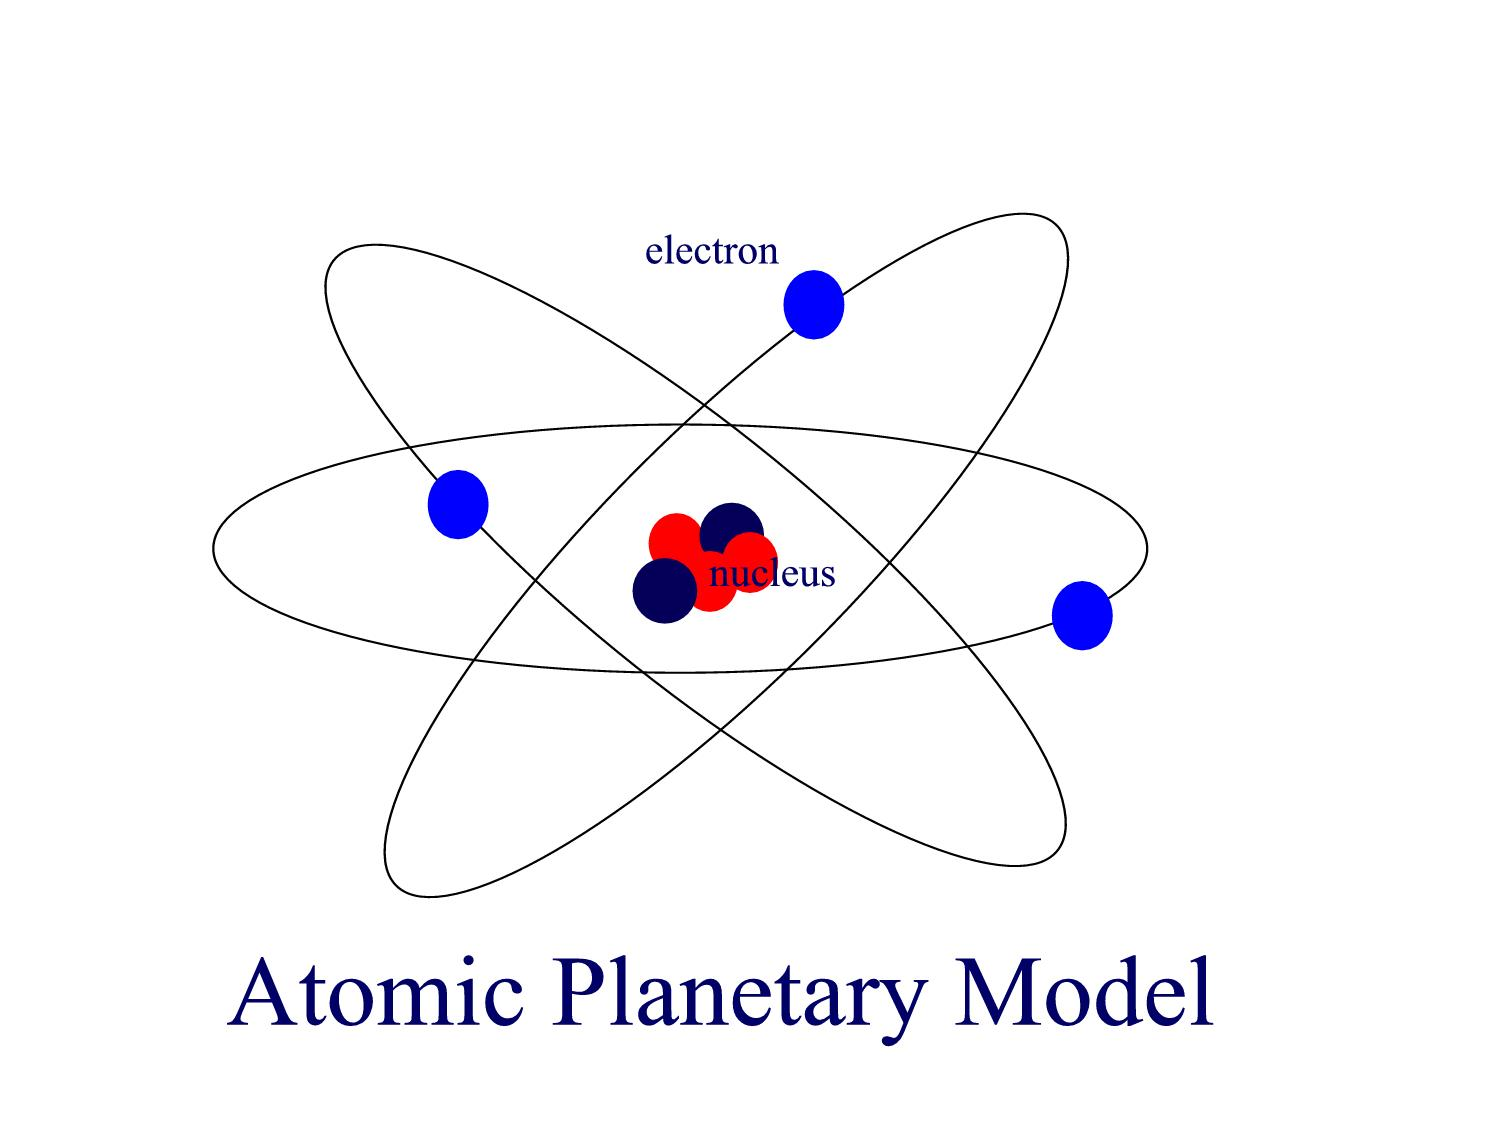 Nitrogen Atom Model In the electron cloud model